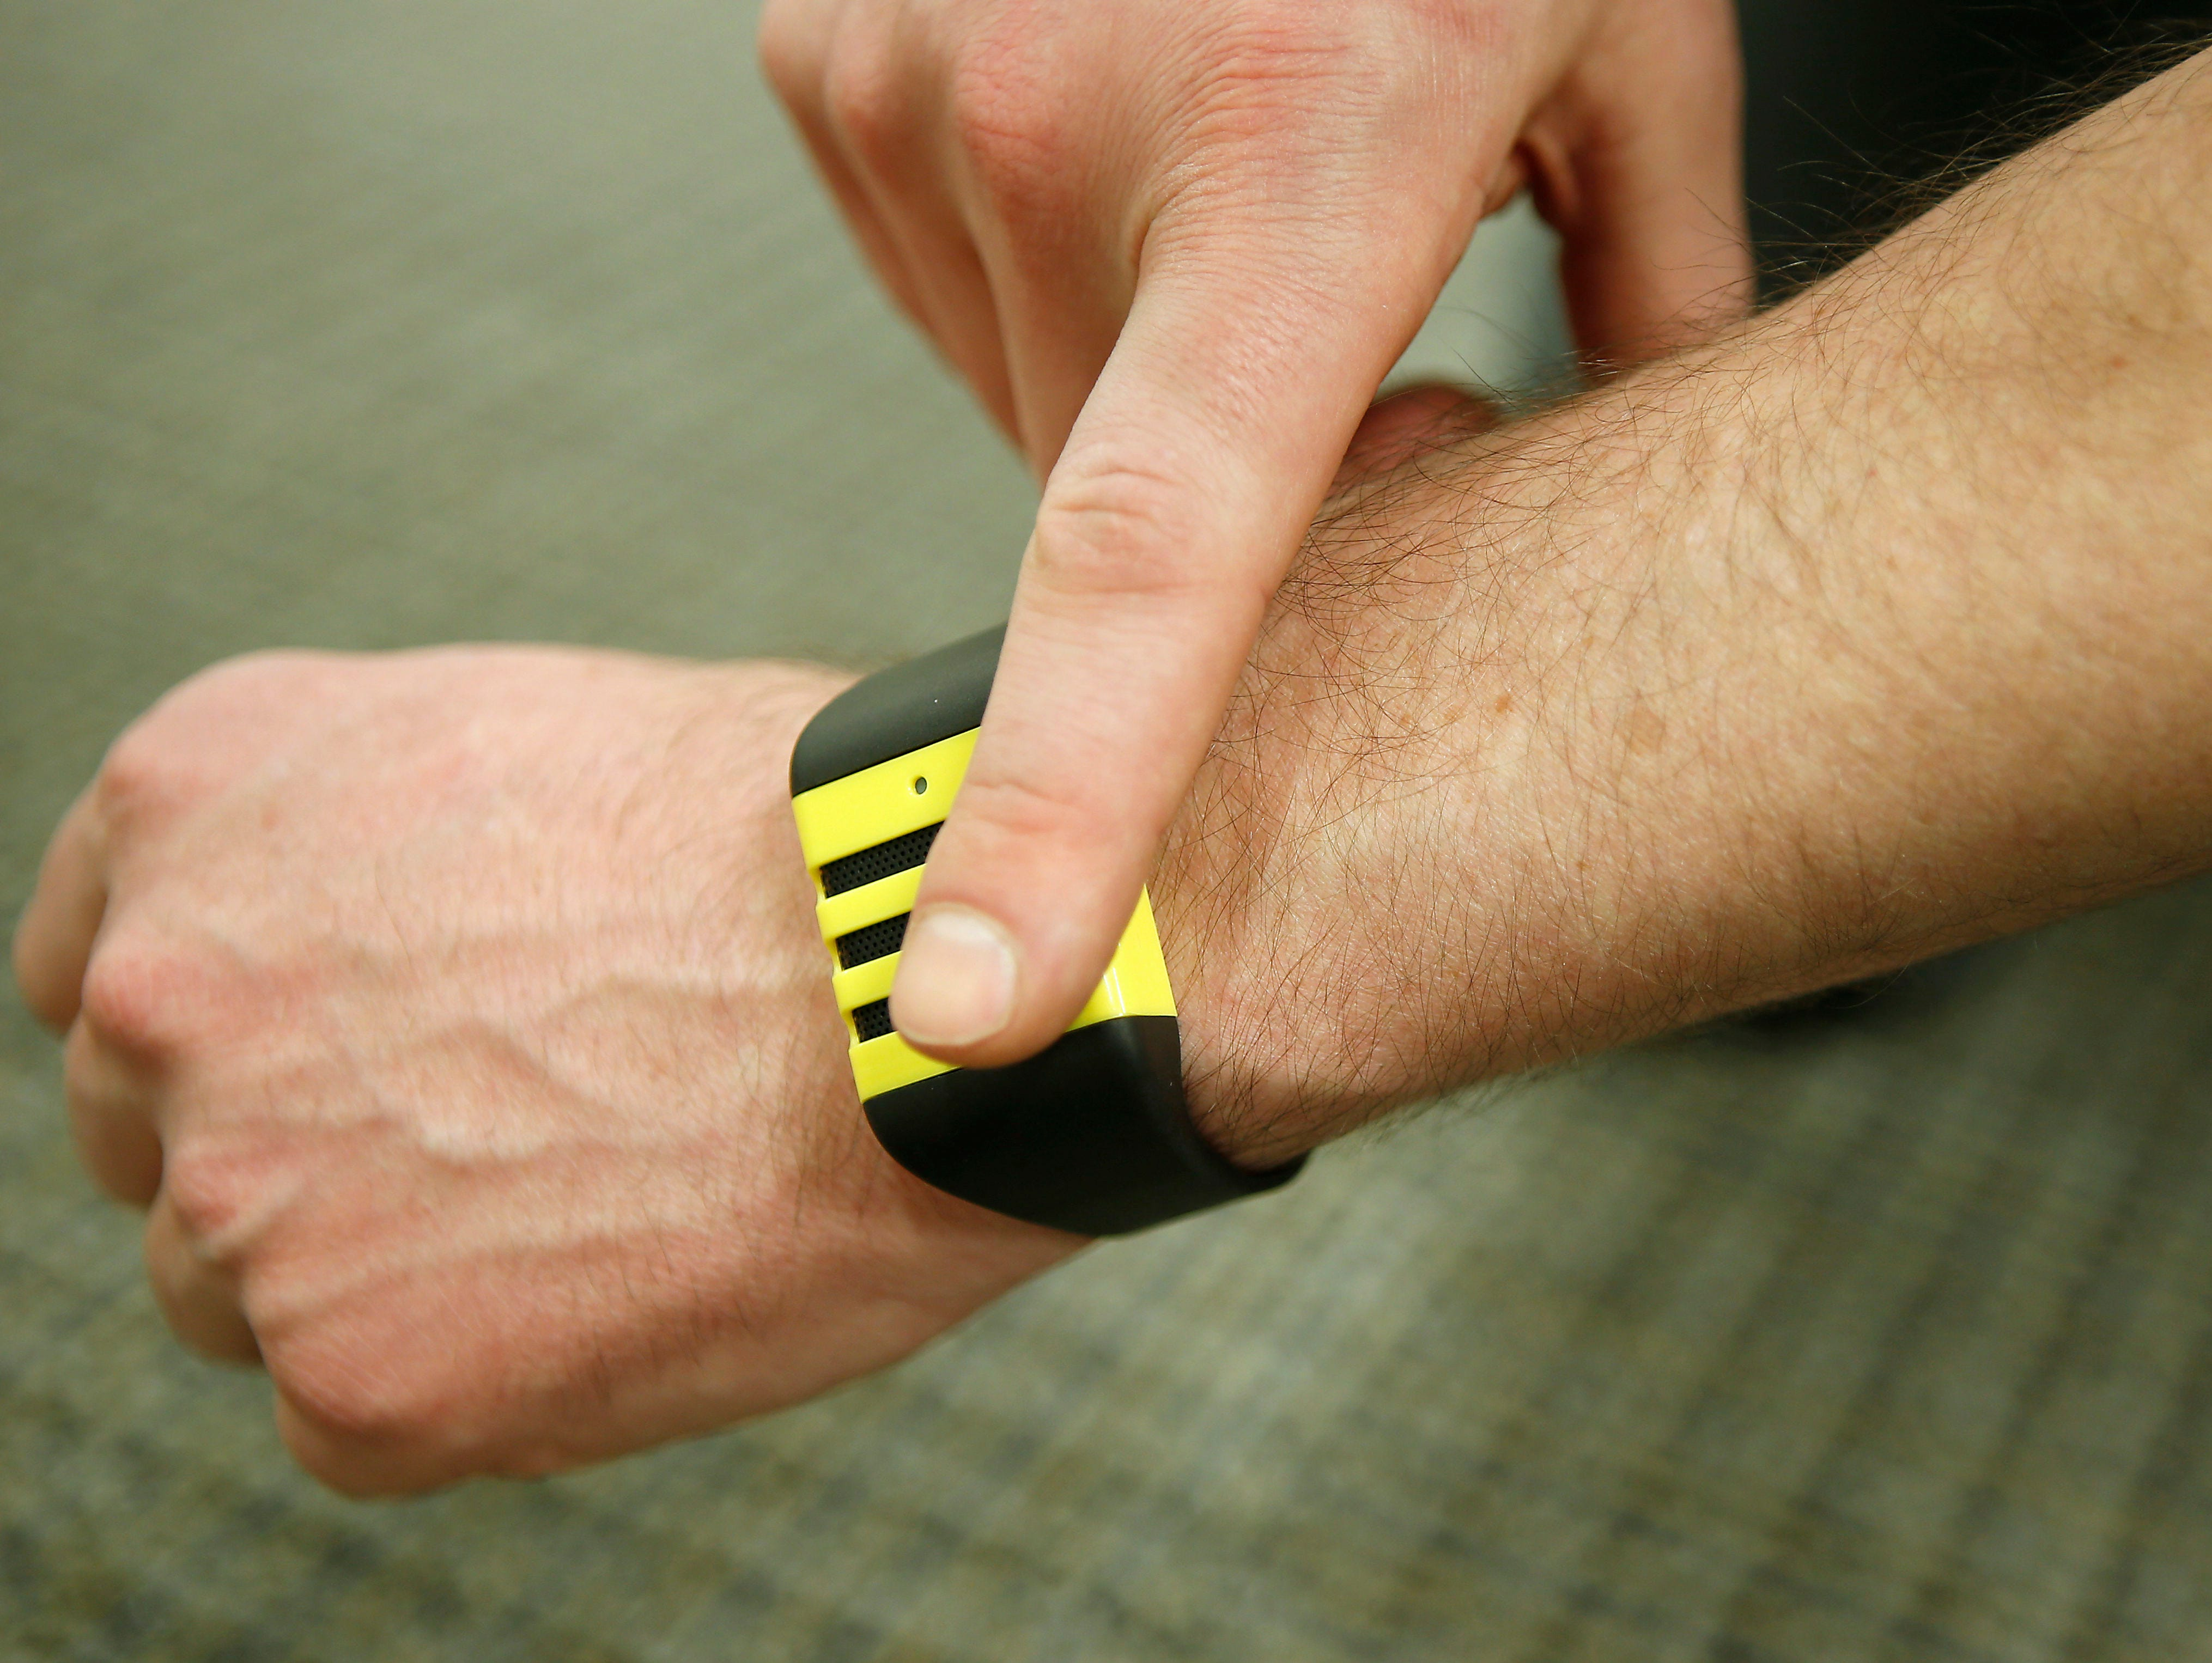 The Kapture Audio-recording Wristband Device is an example of a growing trend of wearable technology. Kapture CEO Mike Sarow shows off the wristband, which allows users to record the previous 60 seconds of audio at a time.